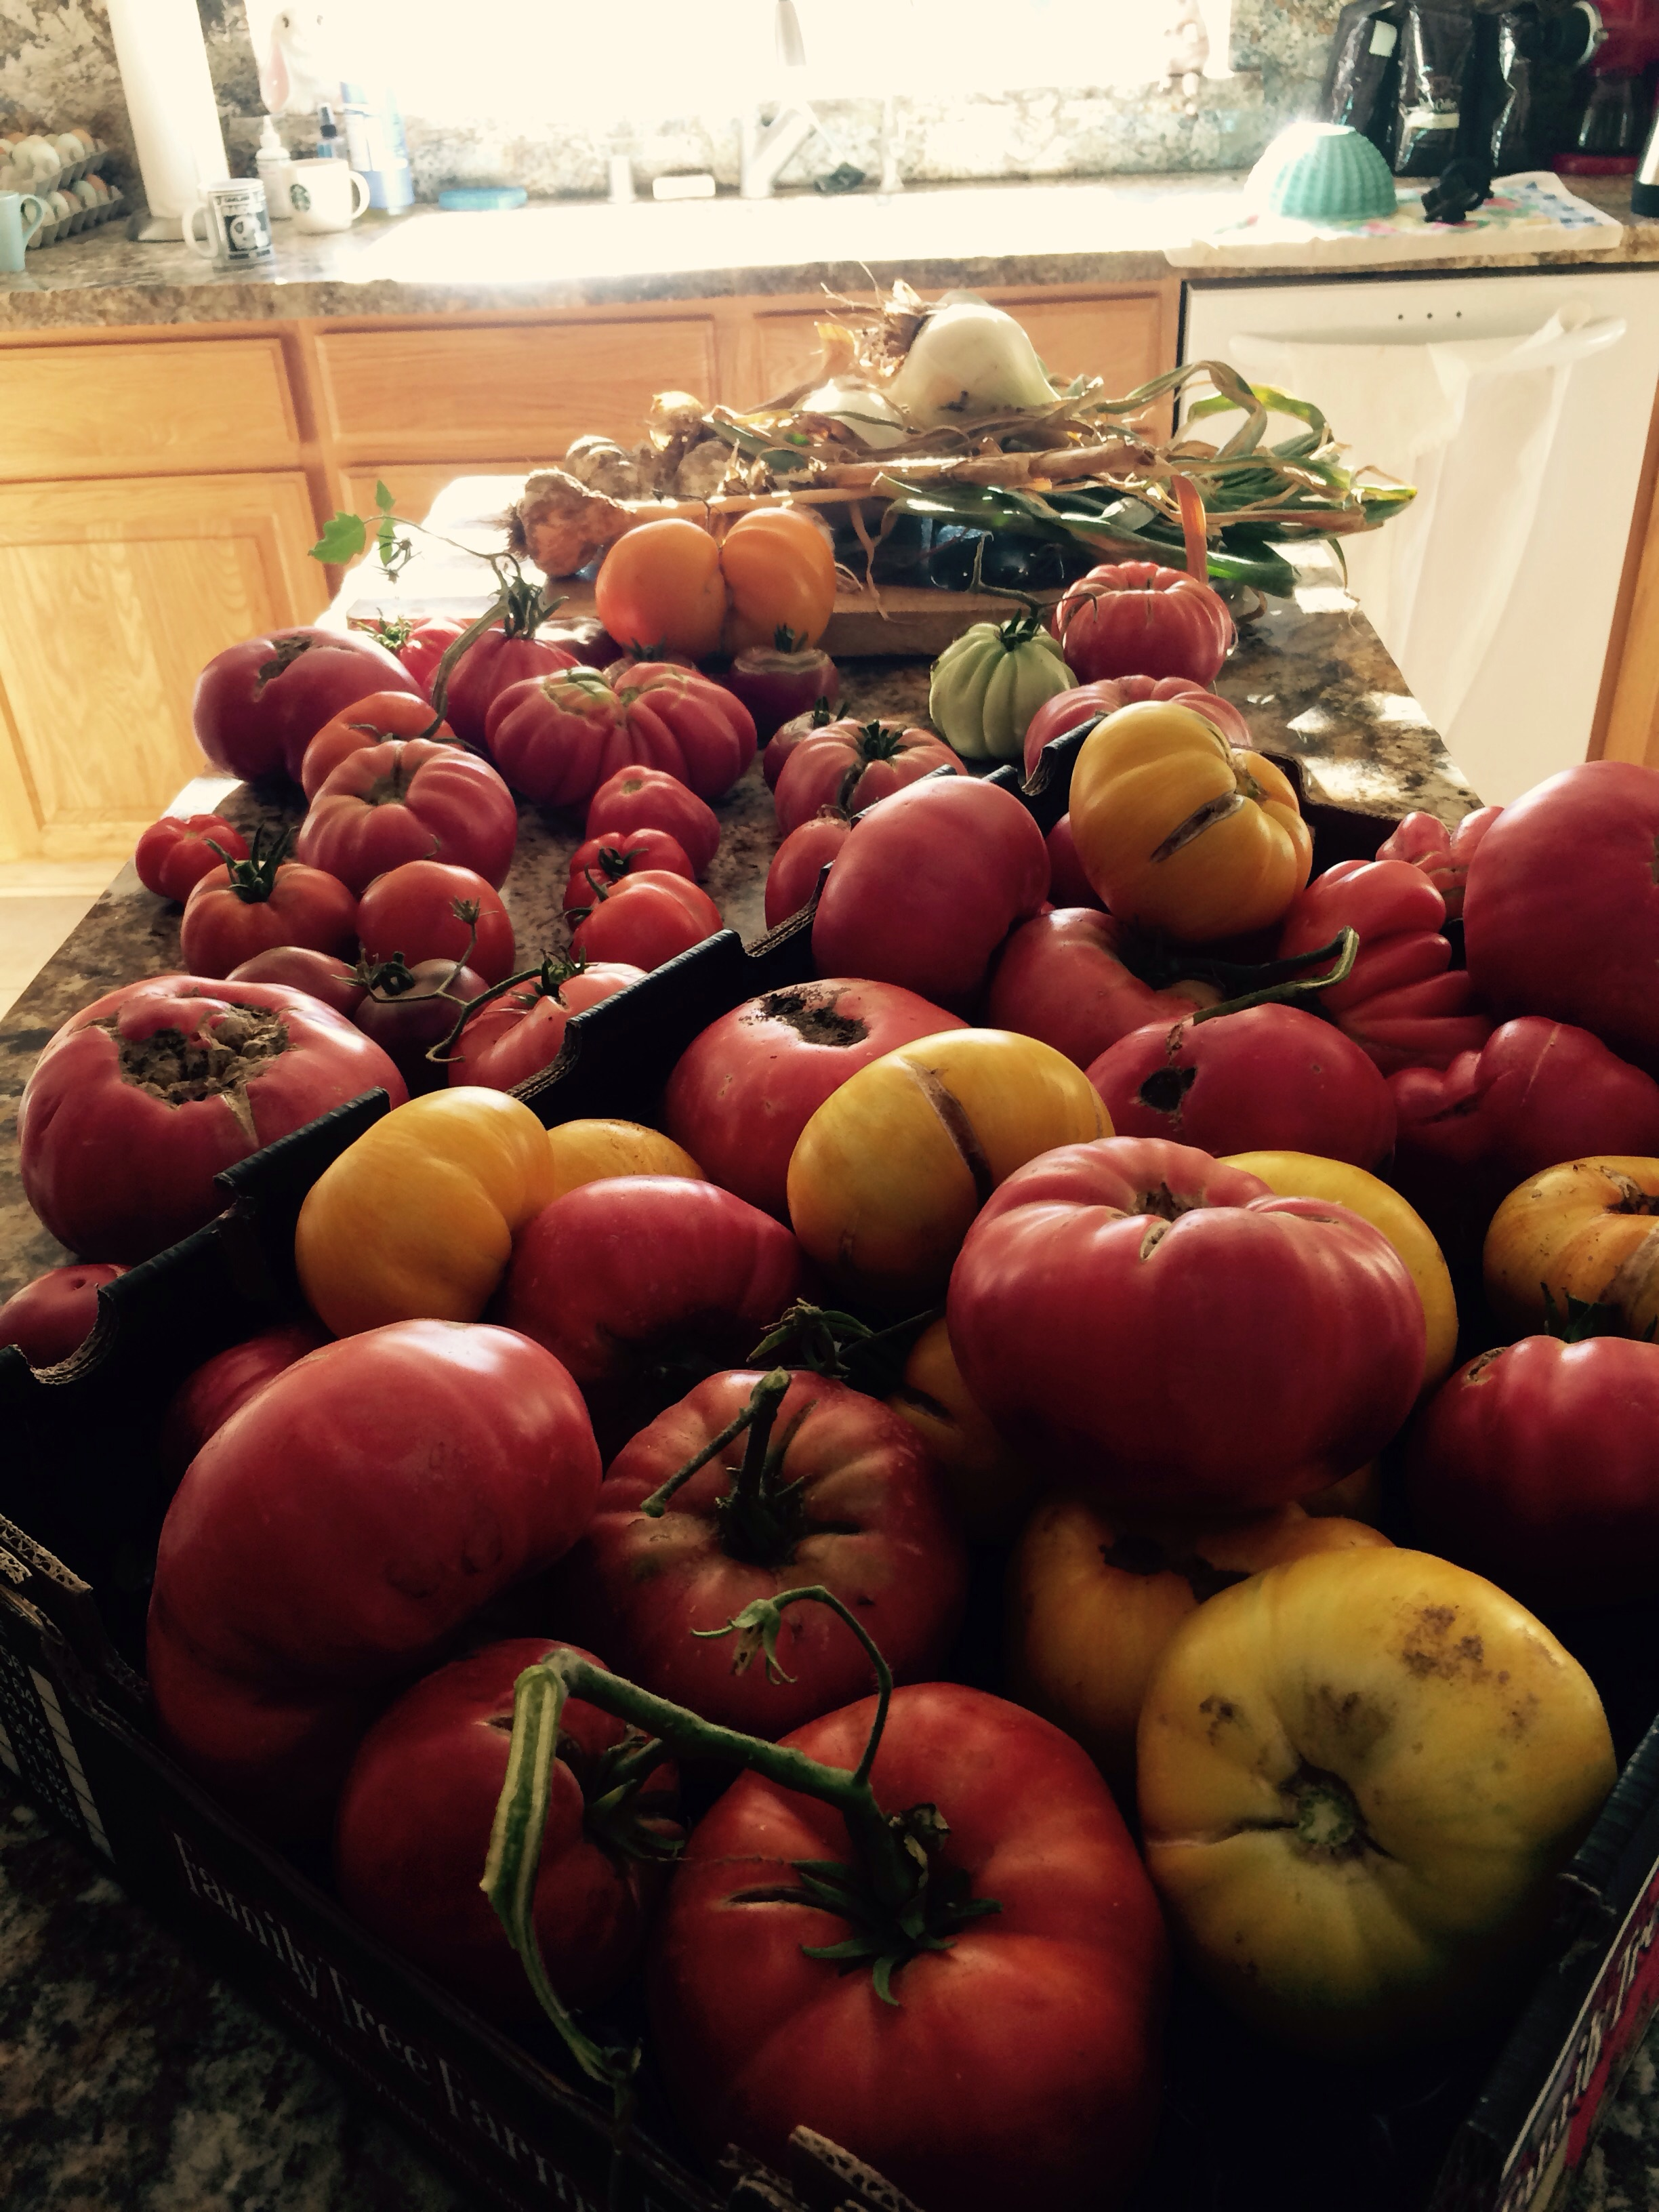 We harvested 39 pounds of heirloom tomatoes along with walla walla onions and garlic going to make  12 quarts heirloom tomatoes sauce and freeze then can a batch this weekend